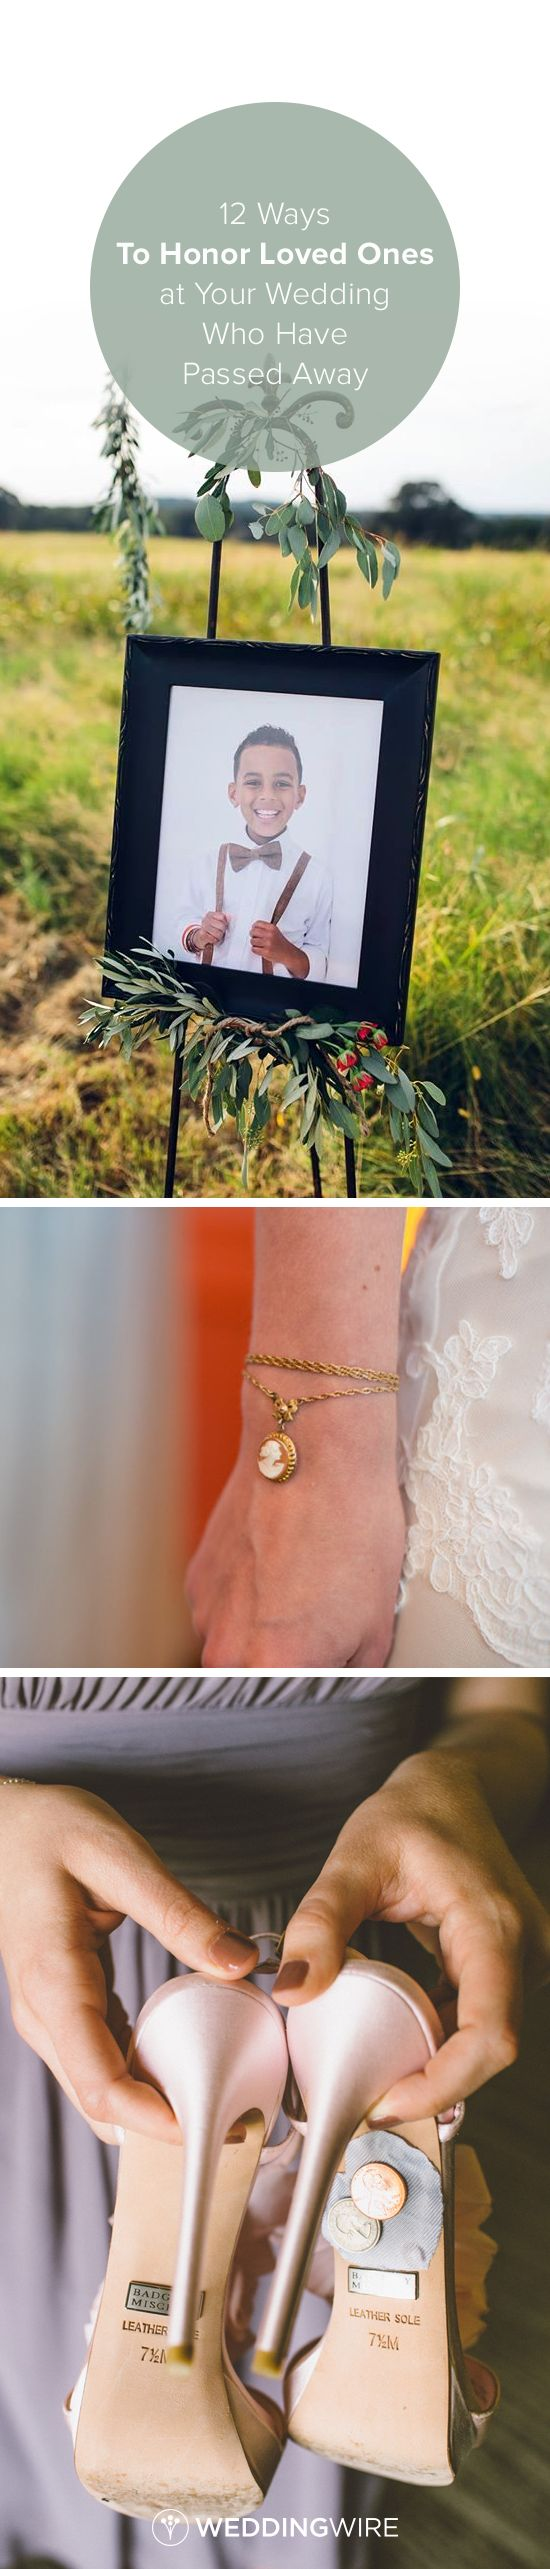 12 Ways to Honor Loved Ones at Your Wedding Who Have Passed Away - Explore different ways to honor your loved ones with jewelry, photographs, cigar bars and more on @weddingwire! {Brandy Angel Photography, Chrissy K Photography, Anna Delores Photography}